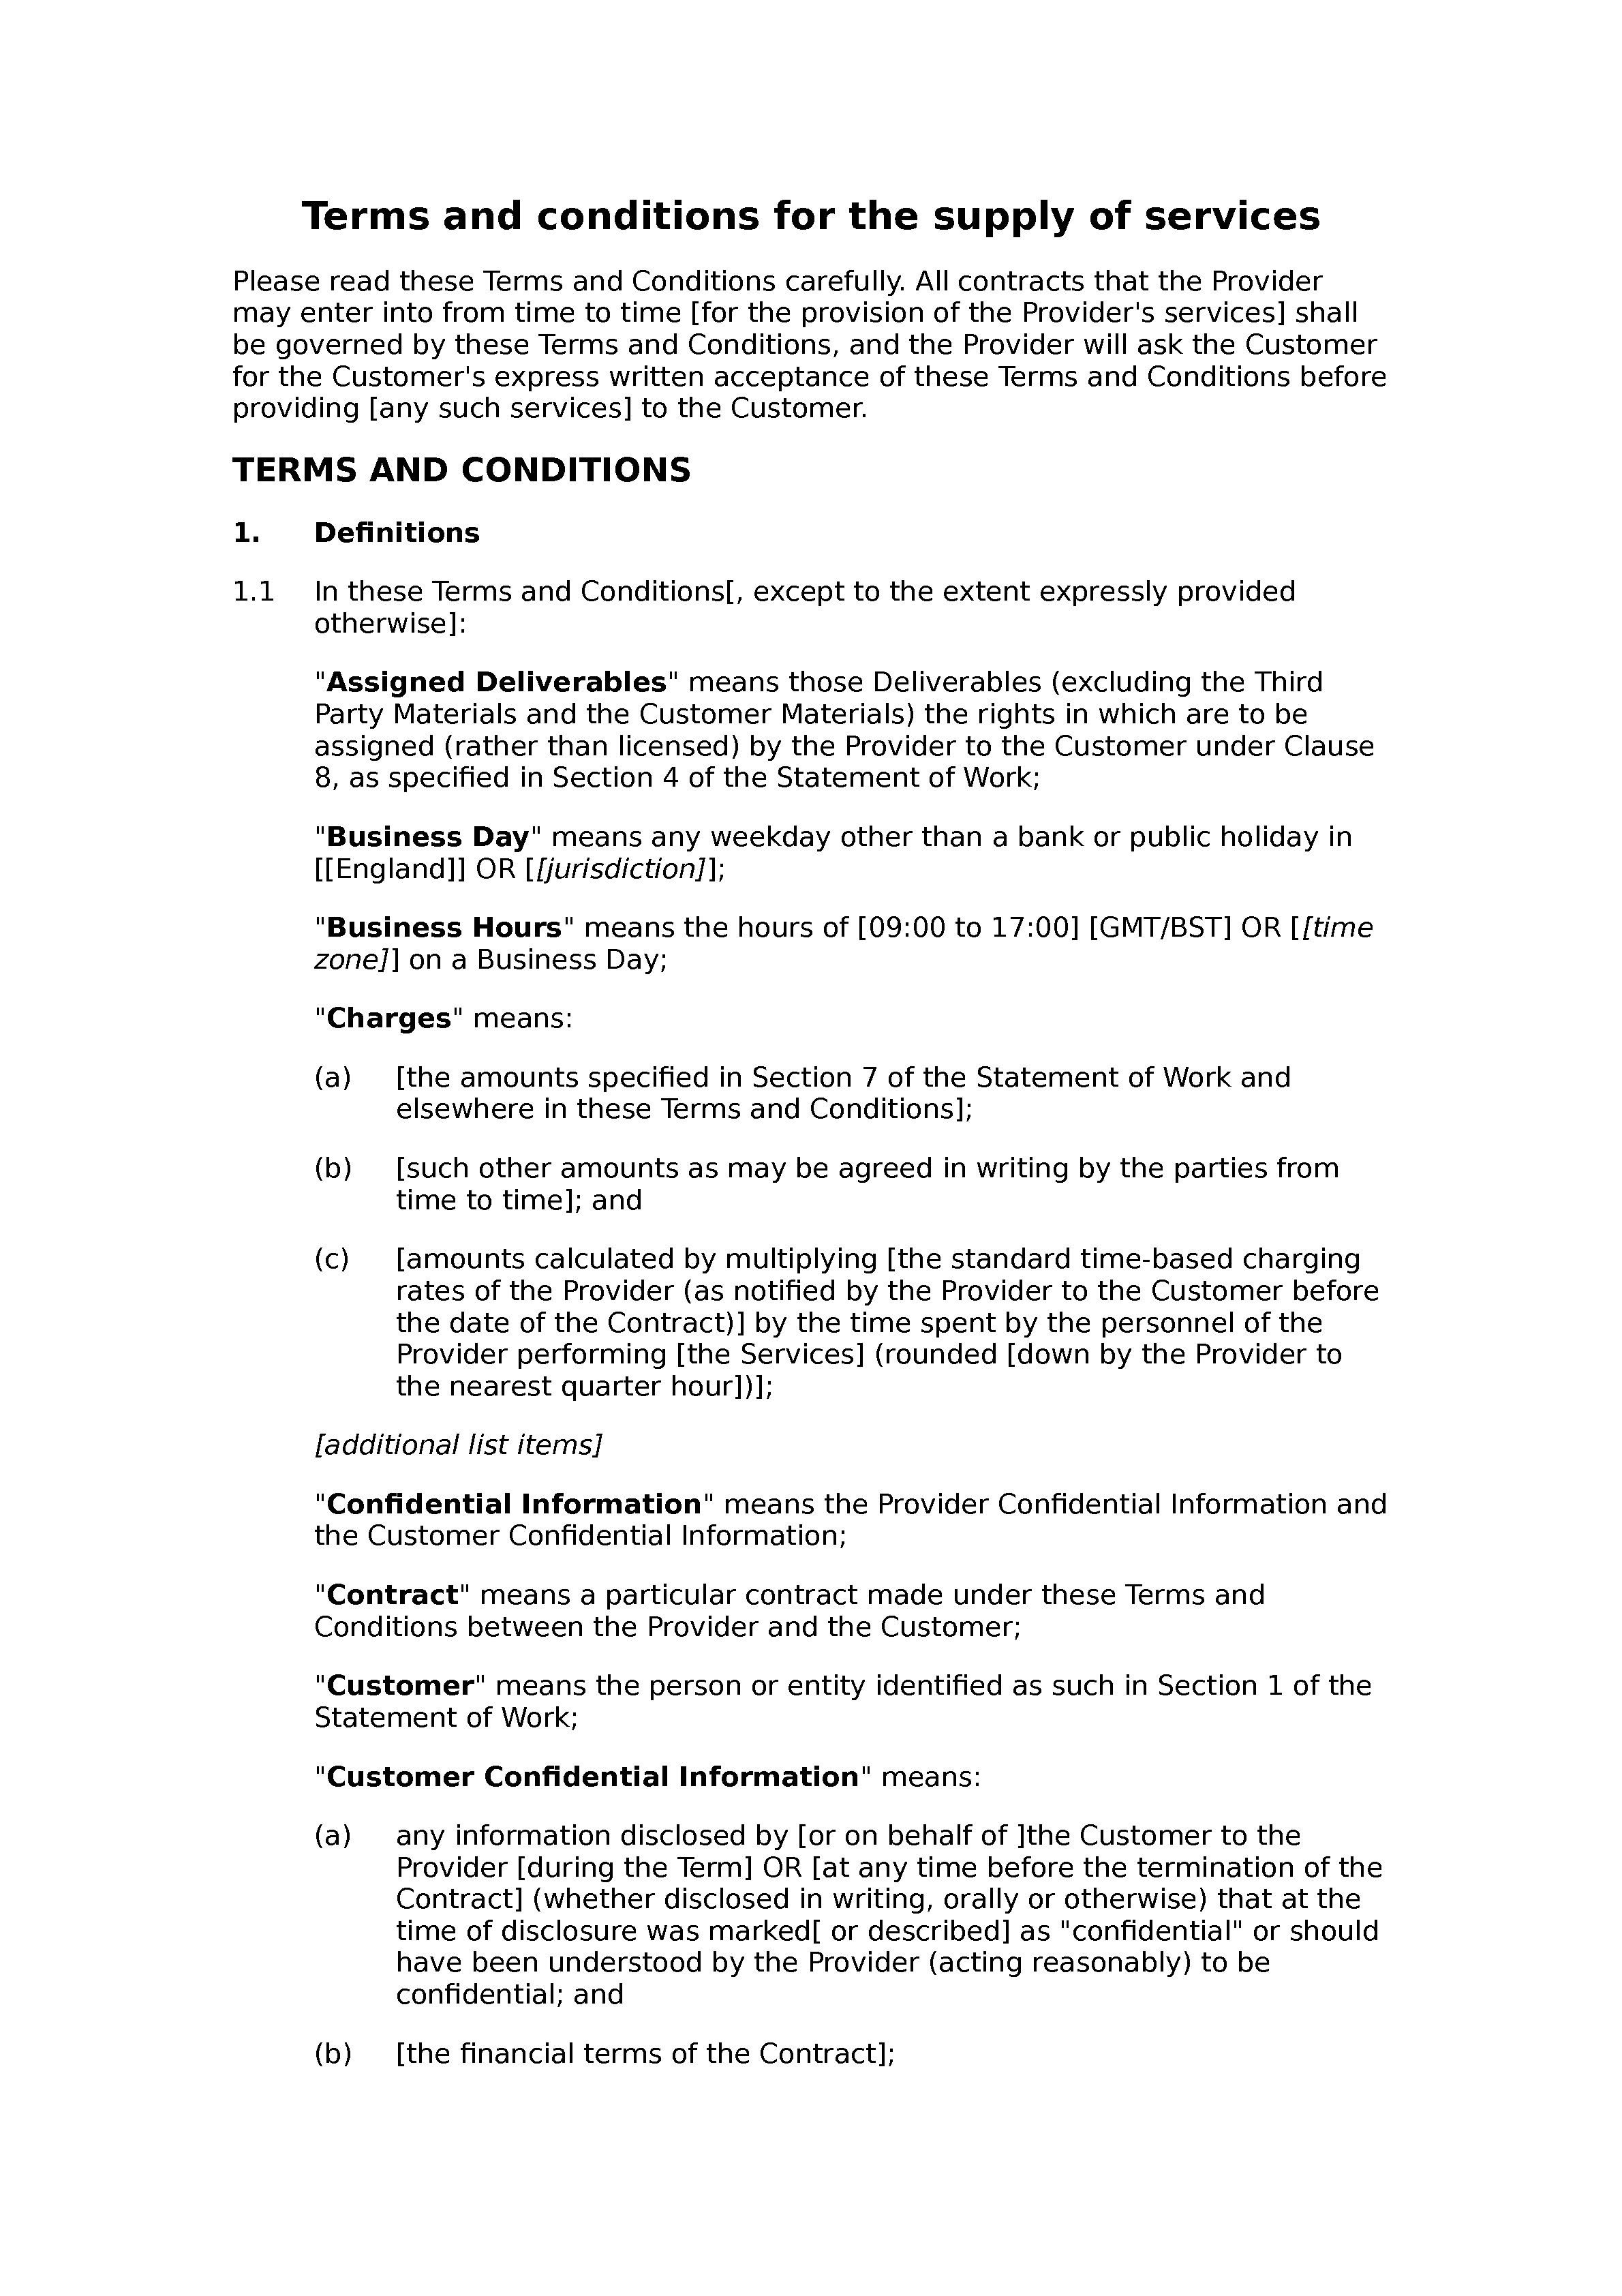 Terms and conditions for the supply of services (standard) document preview